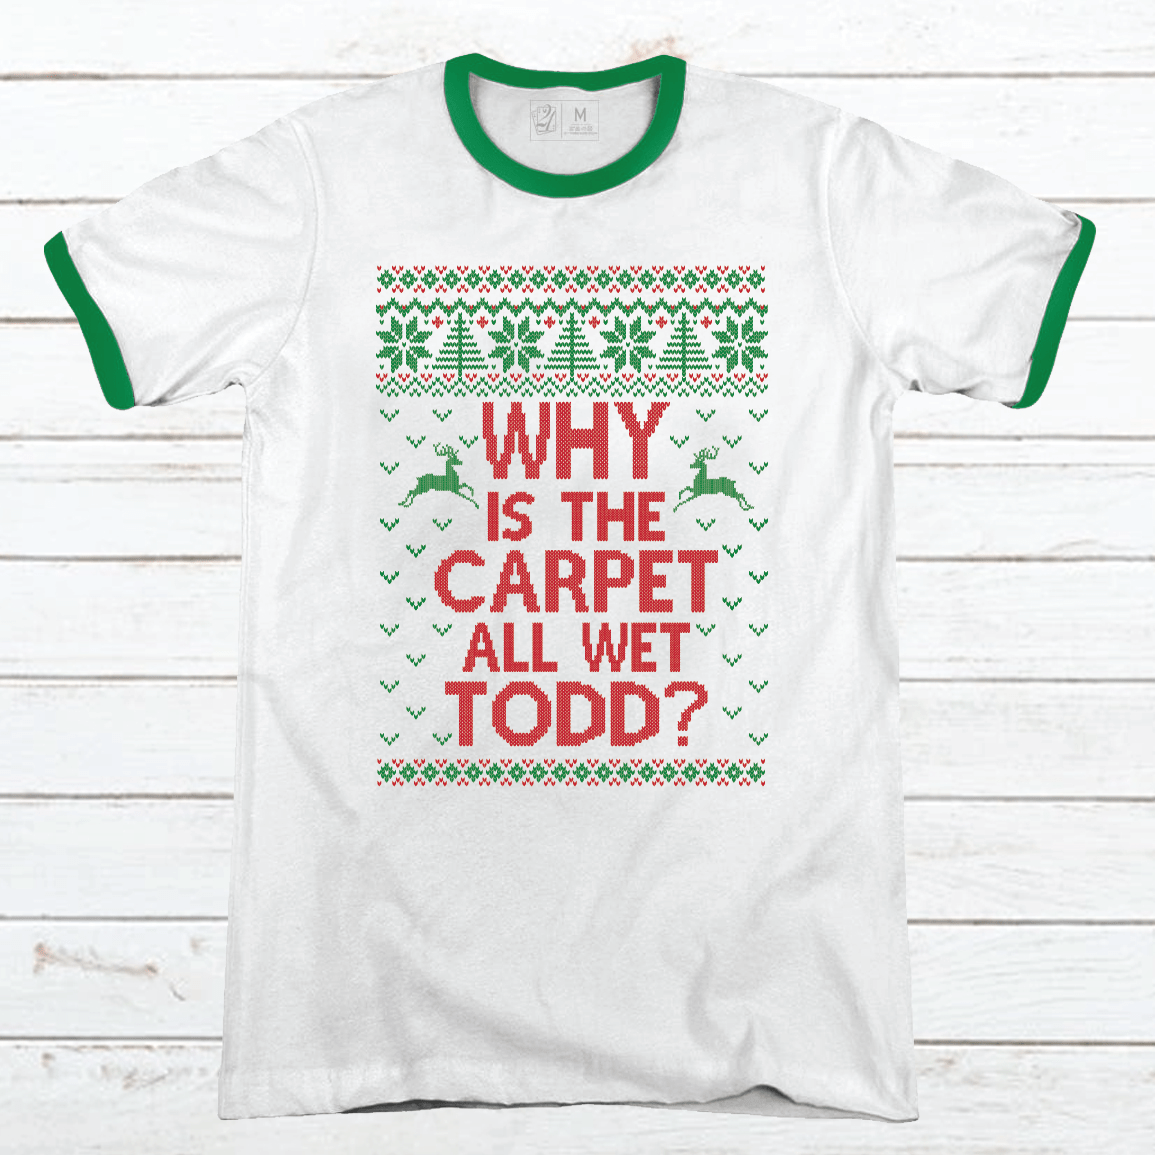 Todd + Margo Carpet Wet Premium Christmas Ringer Tee